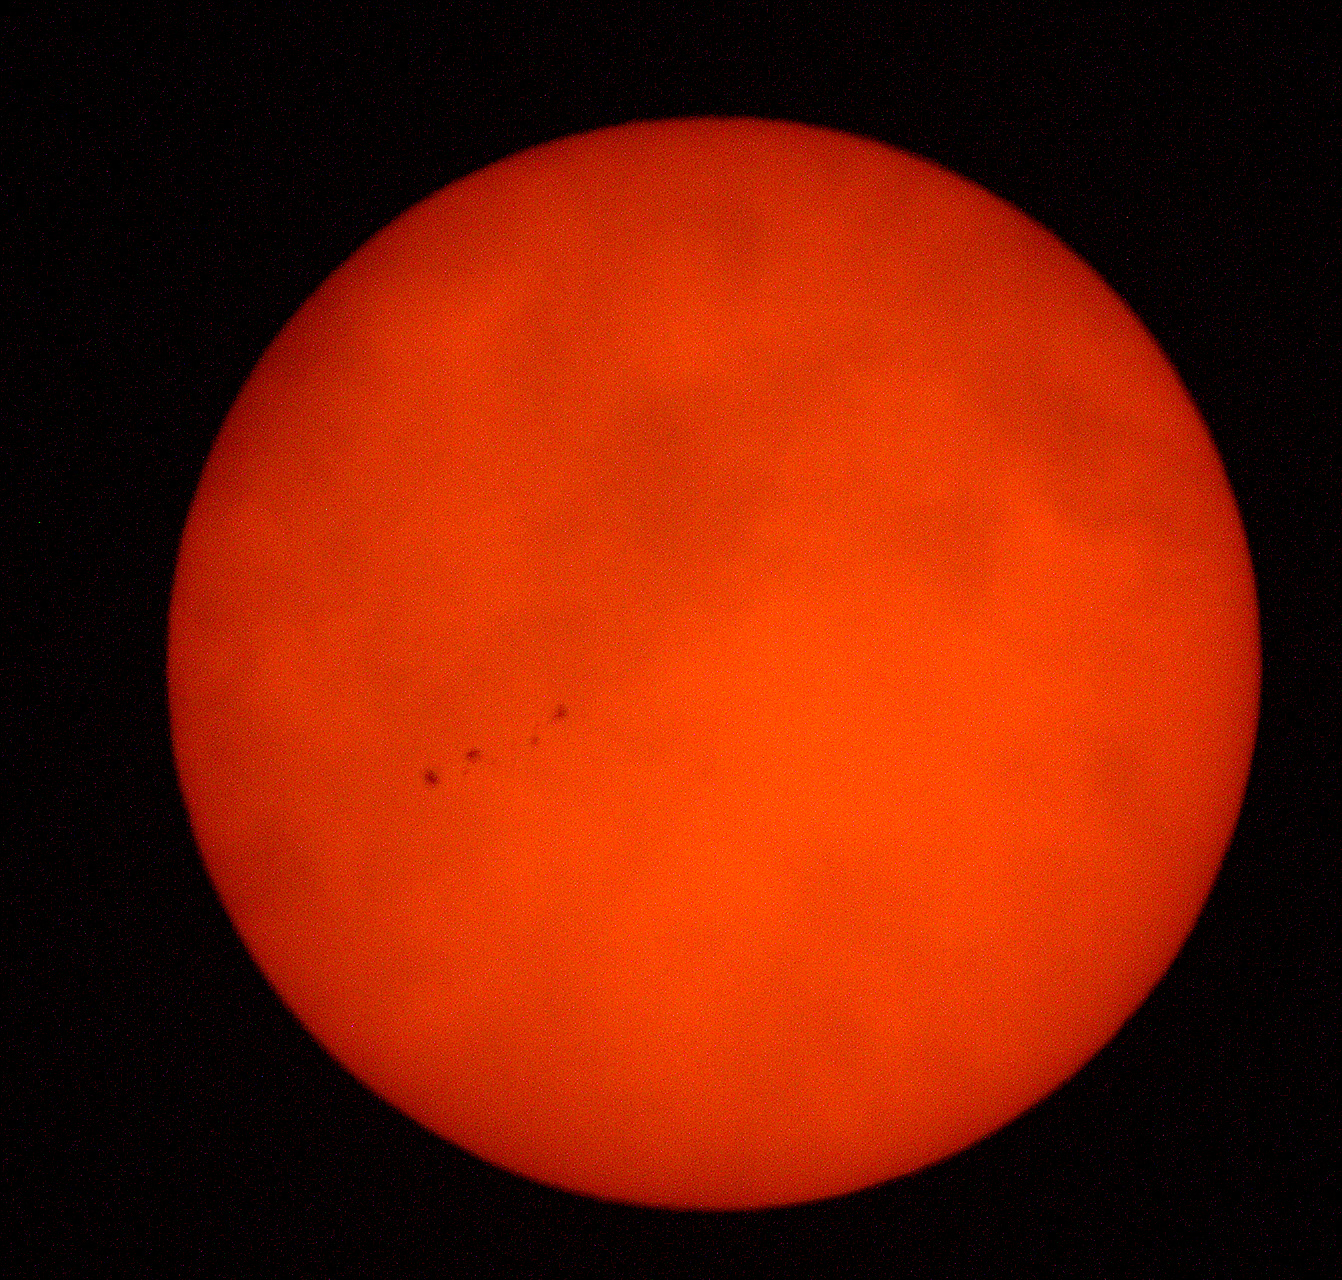 Photography ~ The Sun, 800mm Super Telephoto taken at First Presbyterian Church, Fayetteville, North Carolina, 08/18